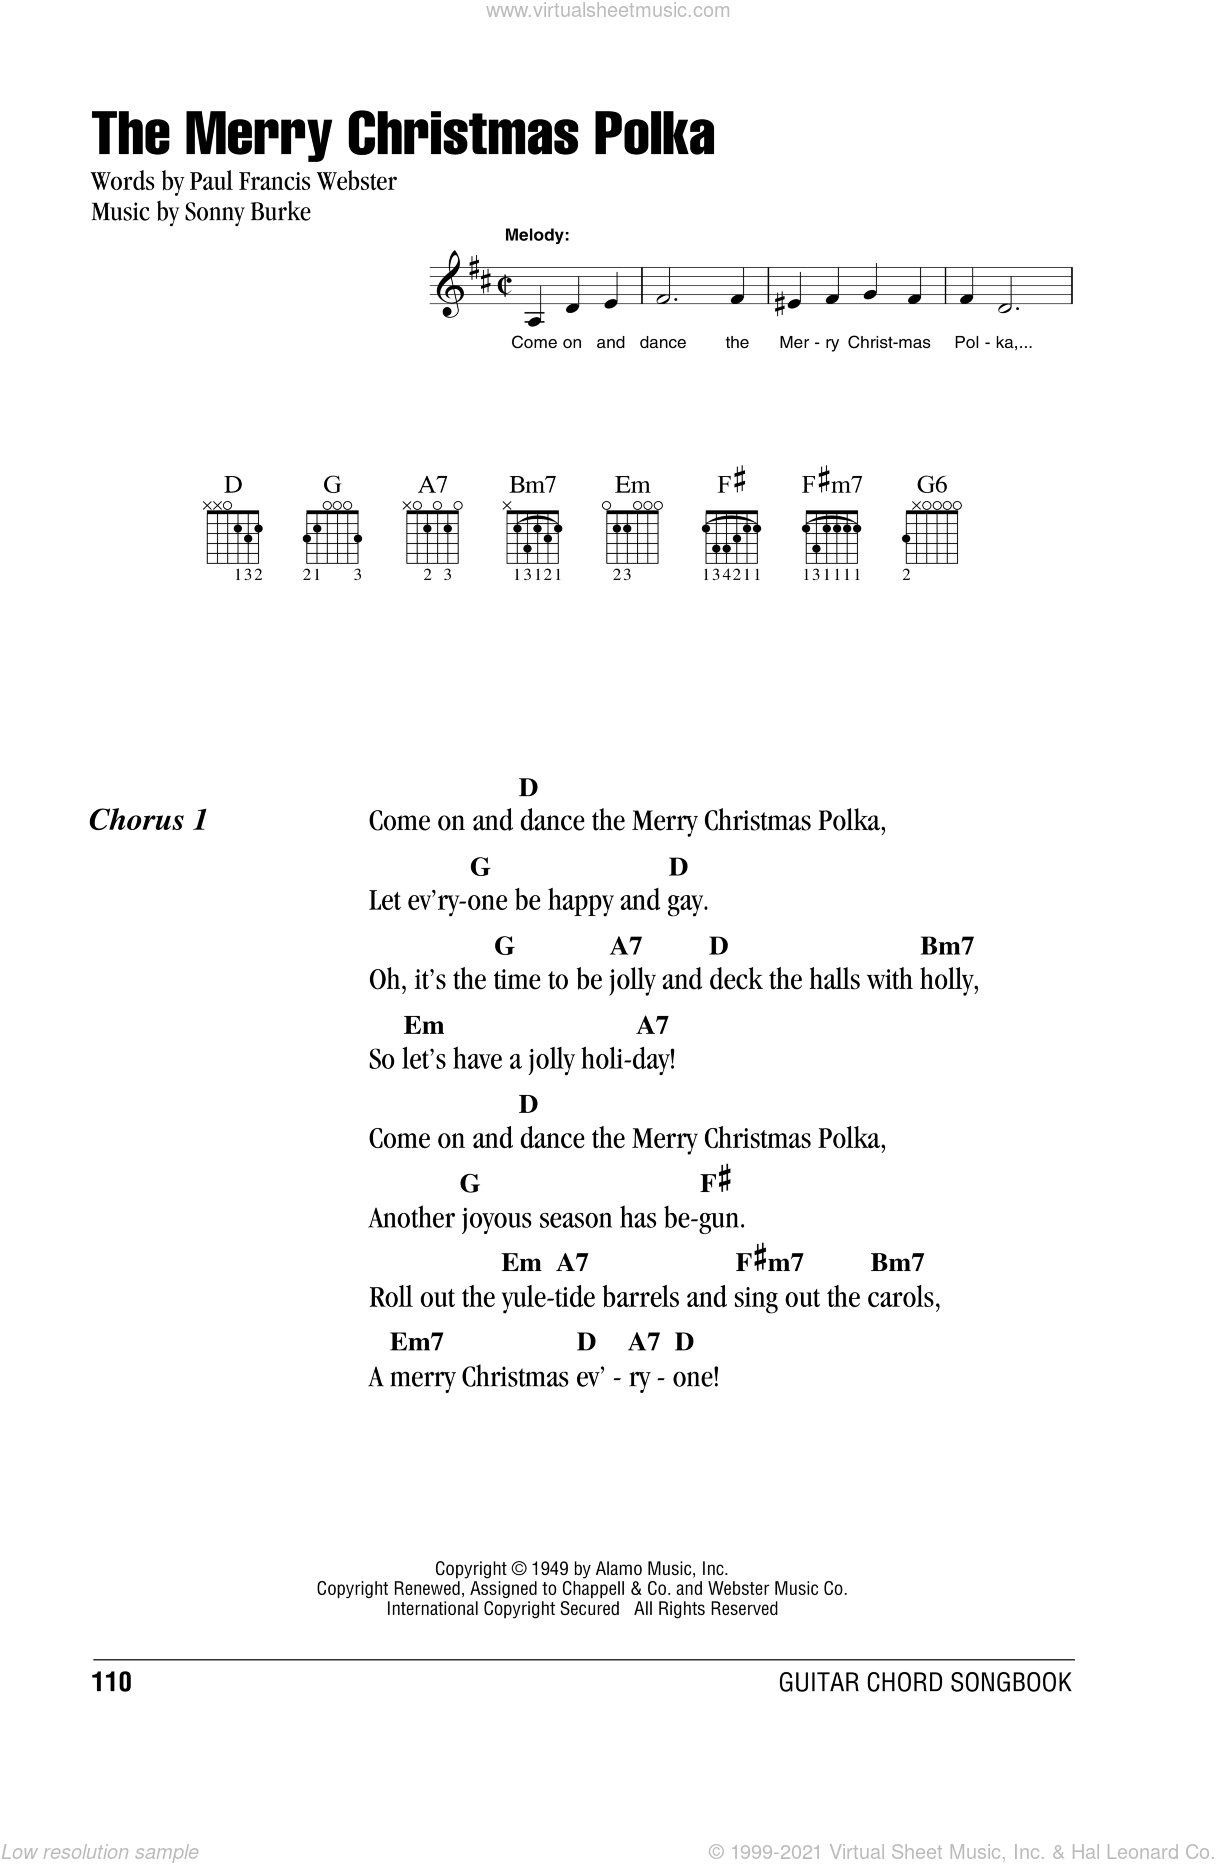 The Merry Christmas Polka sheet music for guitar (chords) by Sonny Burke